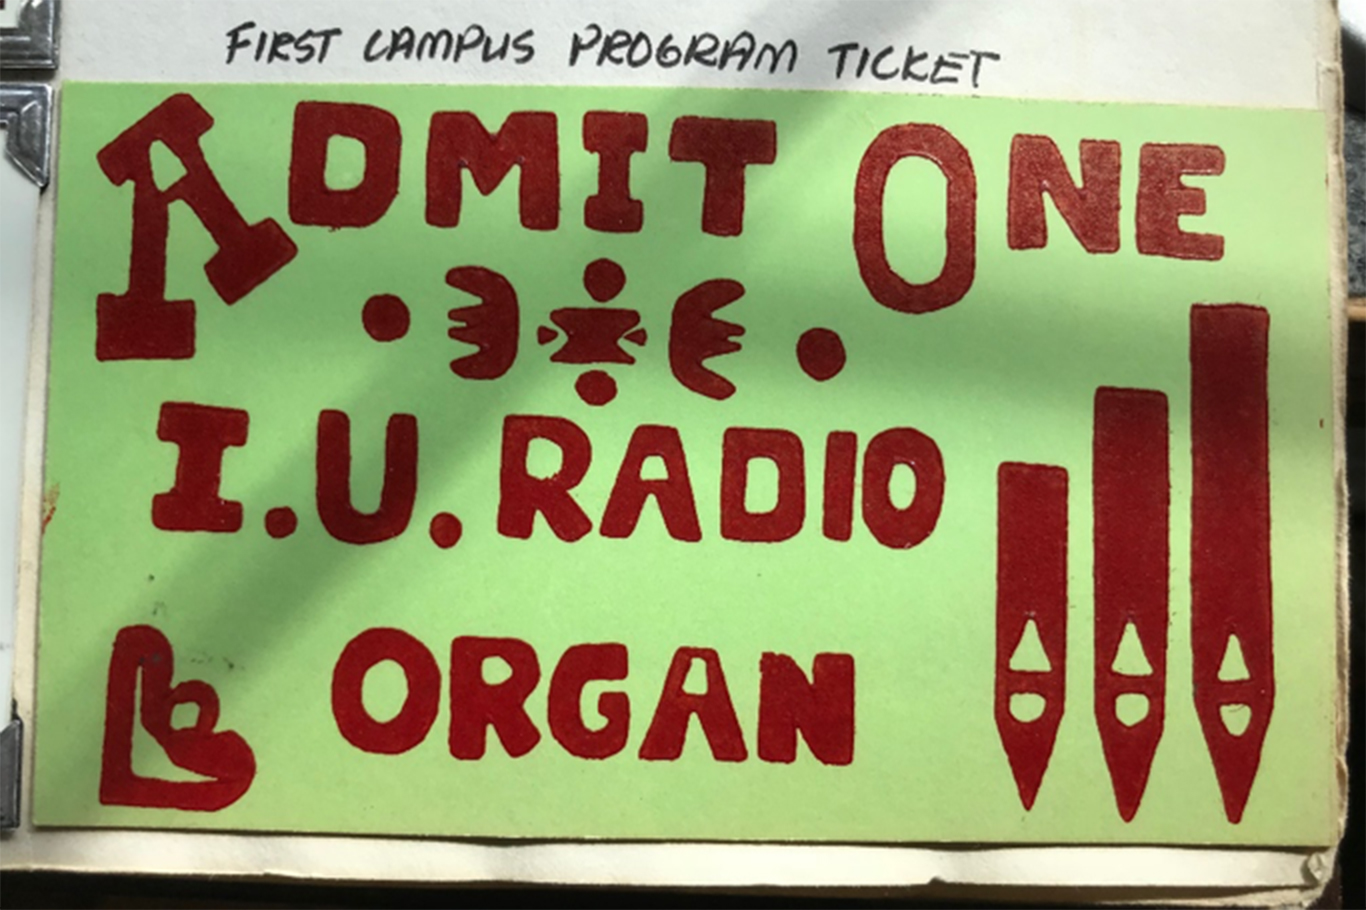 A paper ticket made for a performance of the Radio/TV Building's pipe organ.